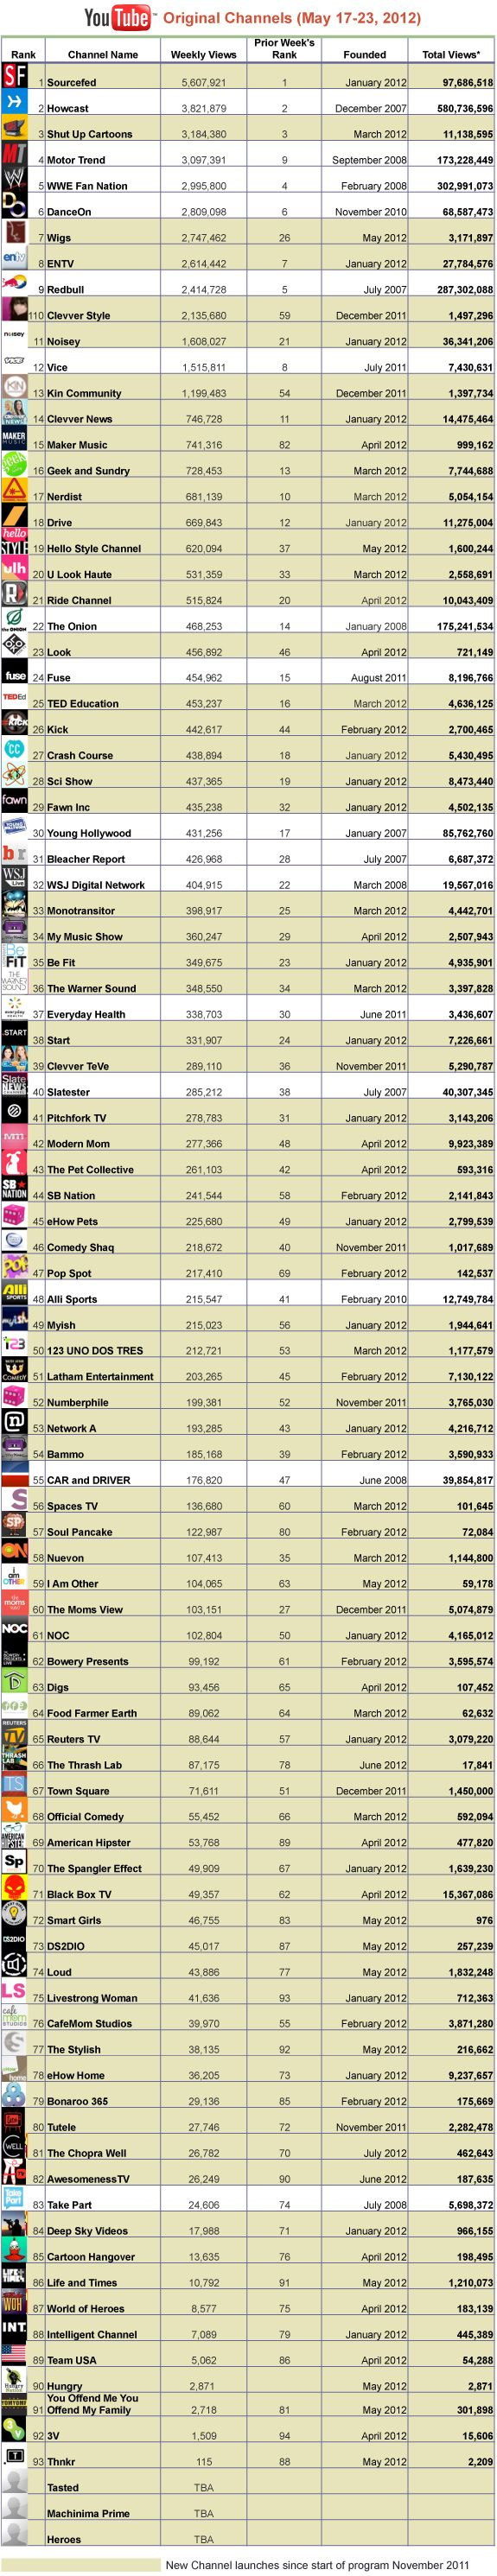 Red Bull is one of the earliest YouTube media brand channels and in the top 5-10 monthly original content channel rankings.